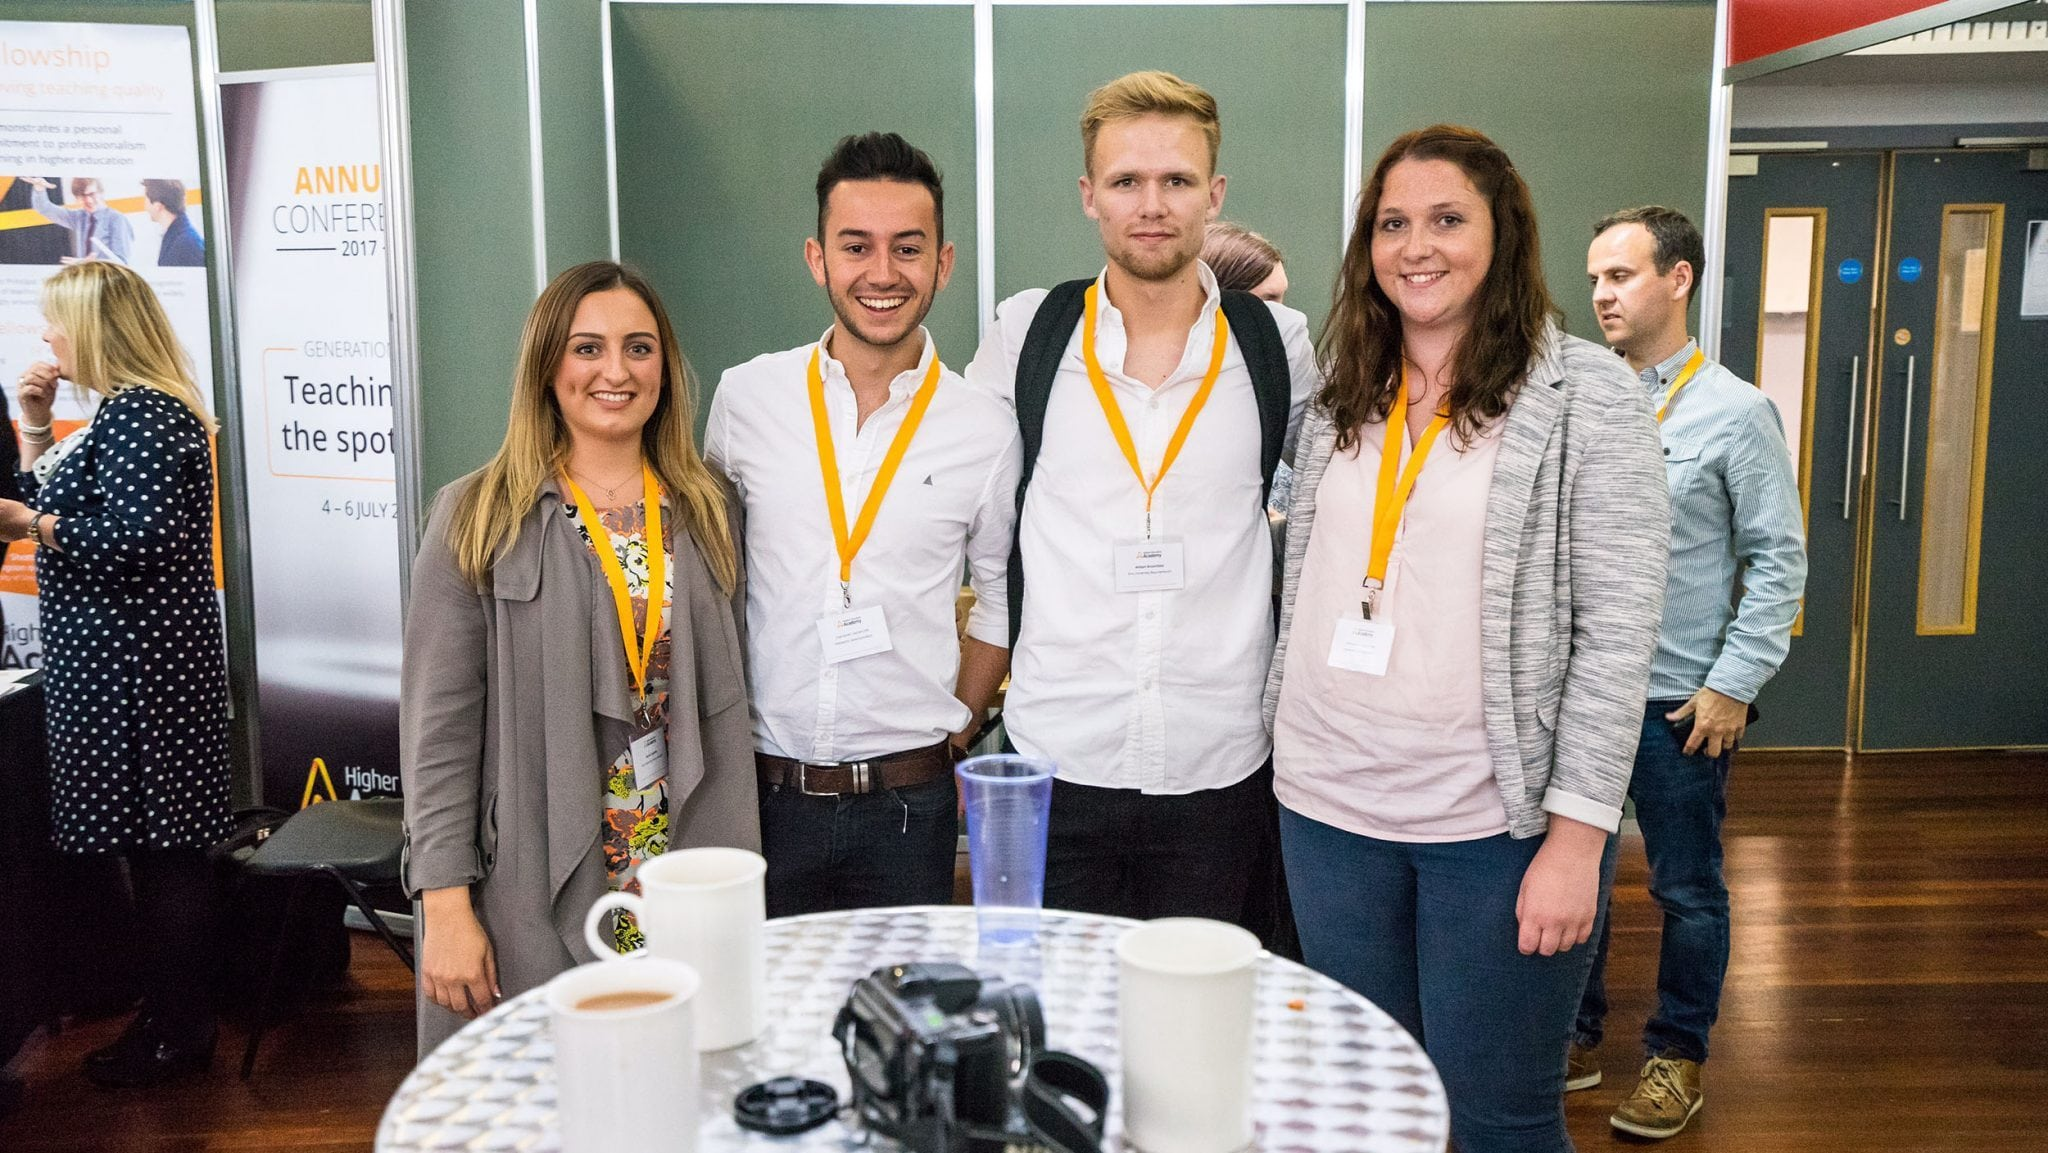 AUB students and staff present at the Higher Education Academy conference